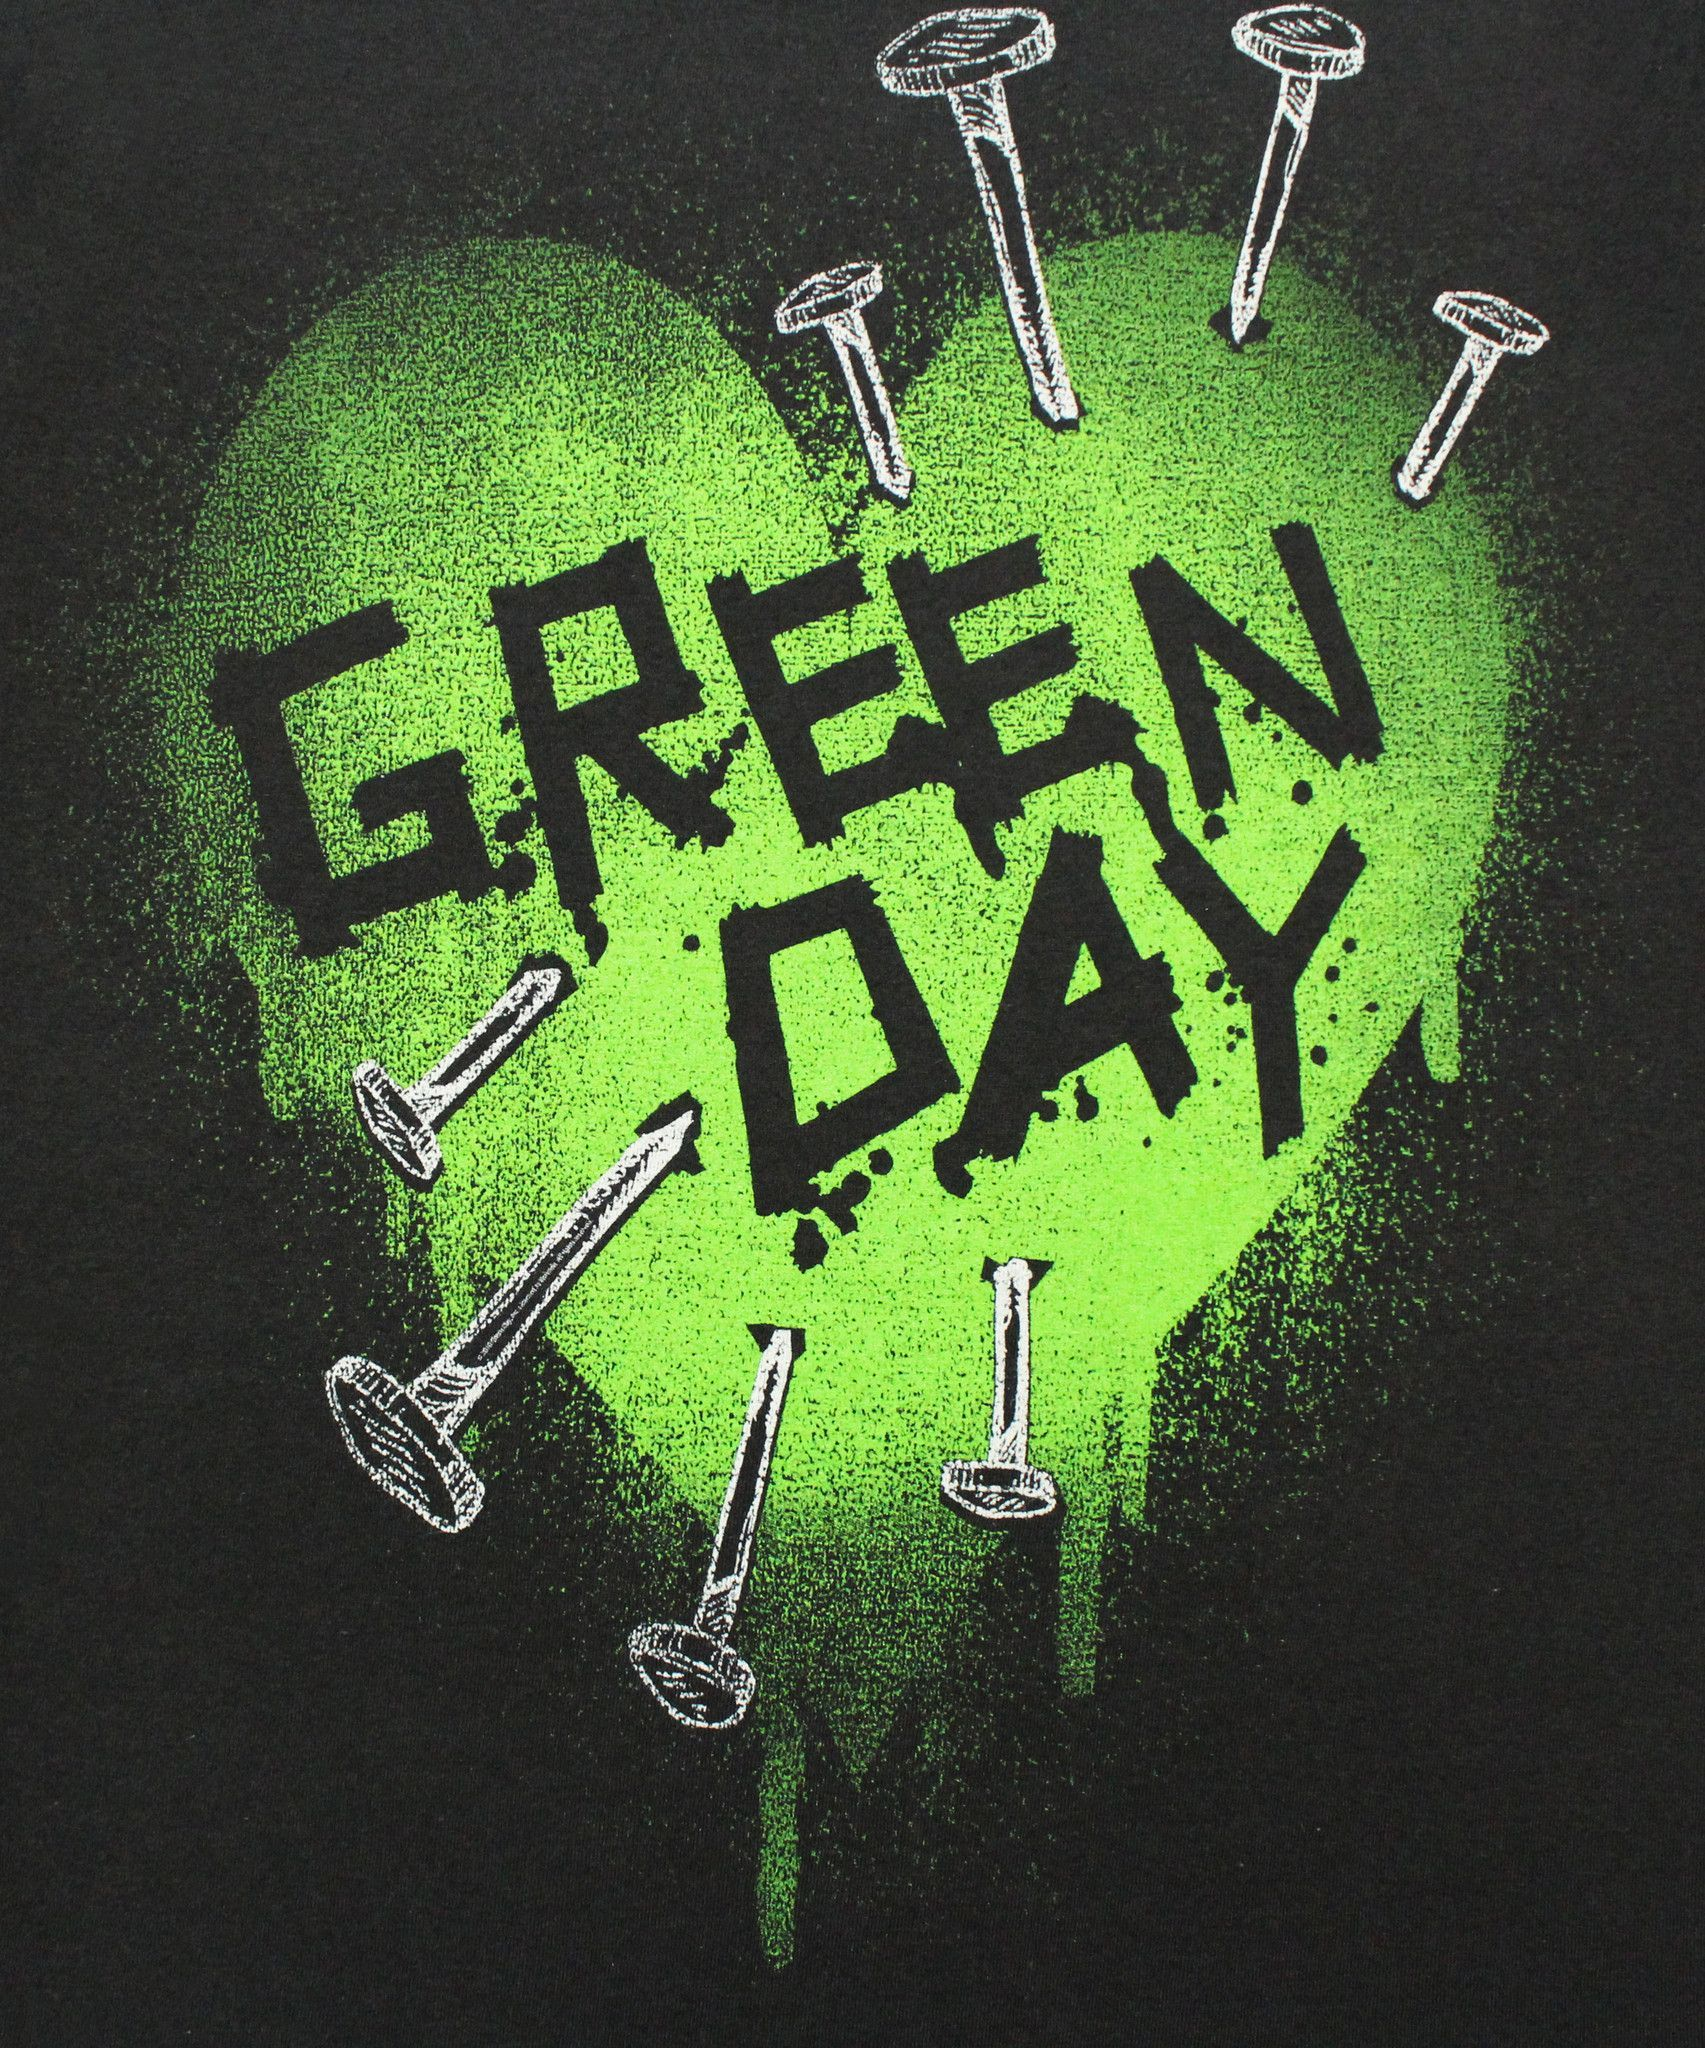 Green Day 11 Photo American Rock Band Legends Picture Music Poster Black White